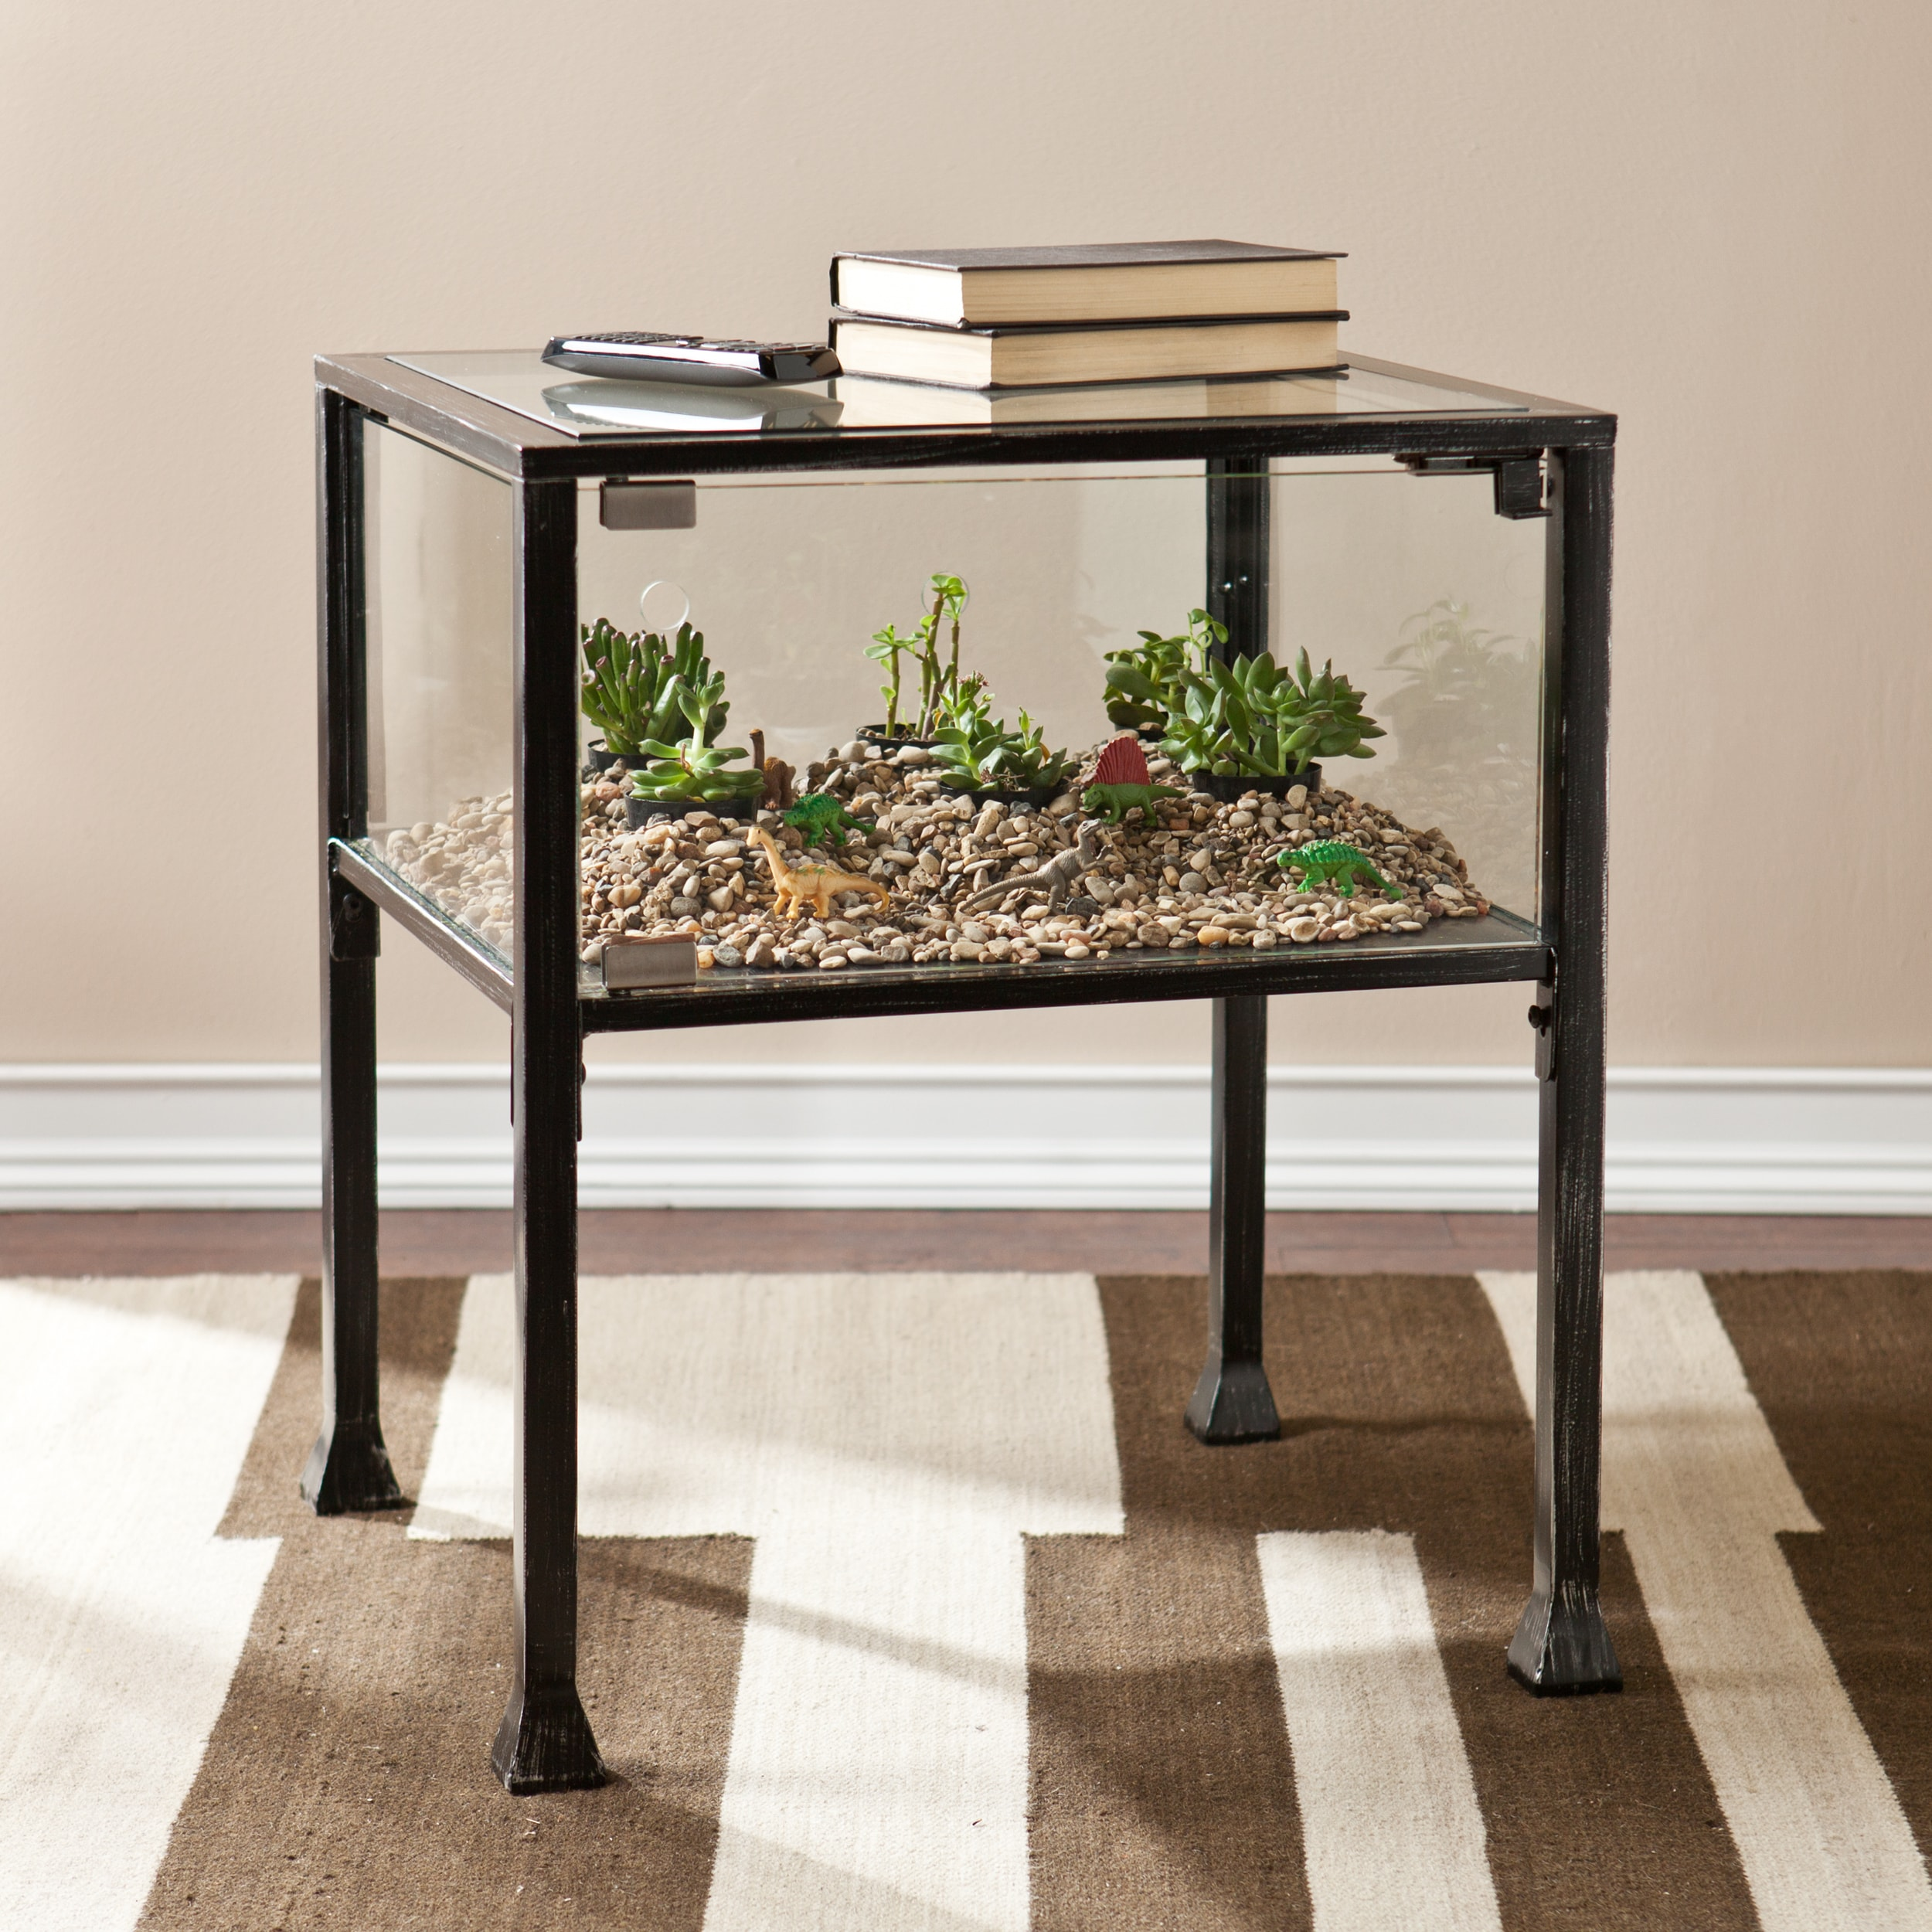 Porch & Den RiNo Brighton Display/ Terrarium Side/ End Table